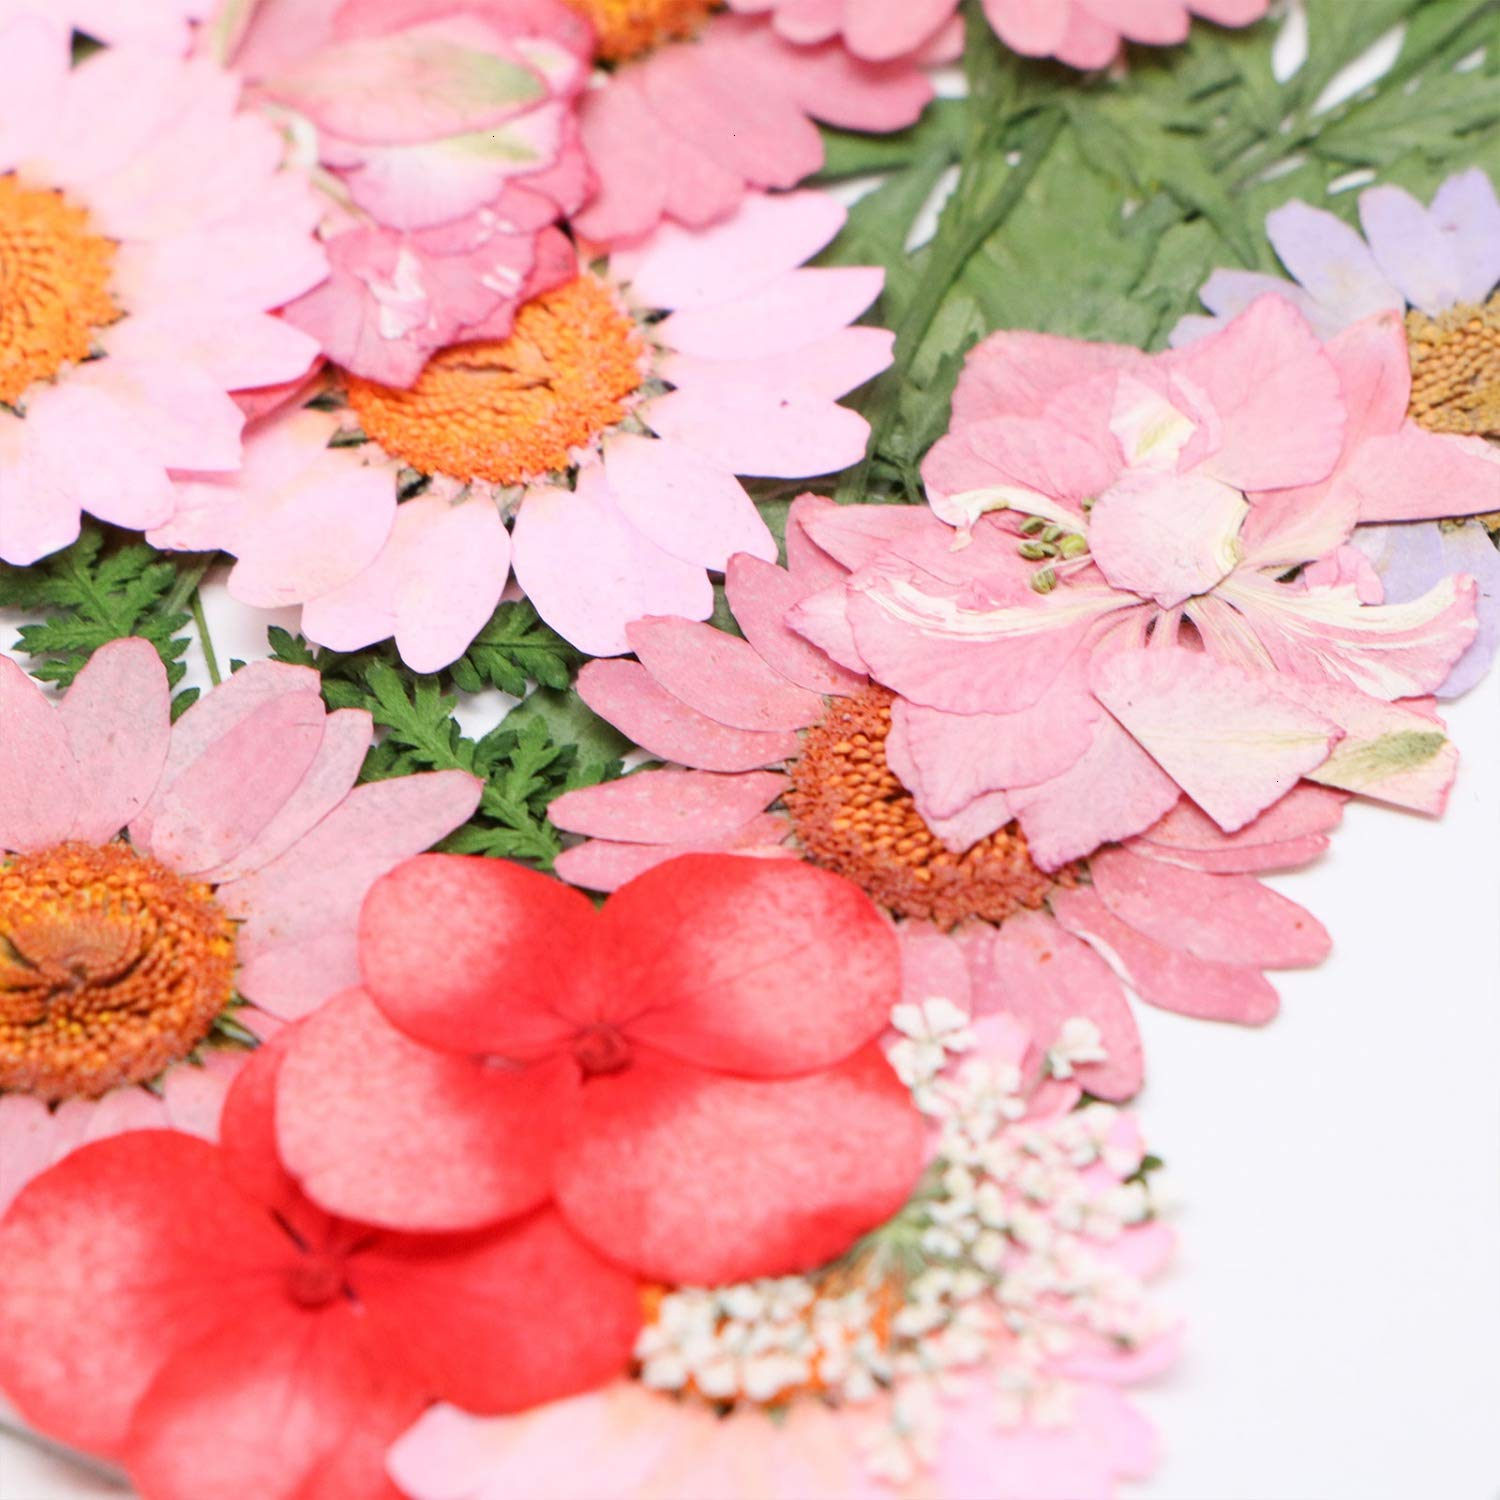 JETEHO 35 PCS Mixed Multiple Pressed Flowers Real Pressed Dried Flowers Natural Dried Flowers DIY Resin Jewelry Art Floral Decors